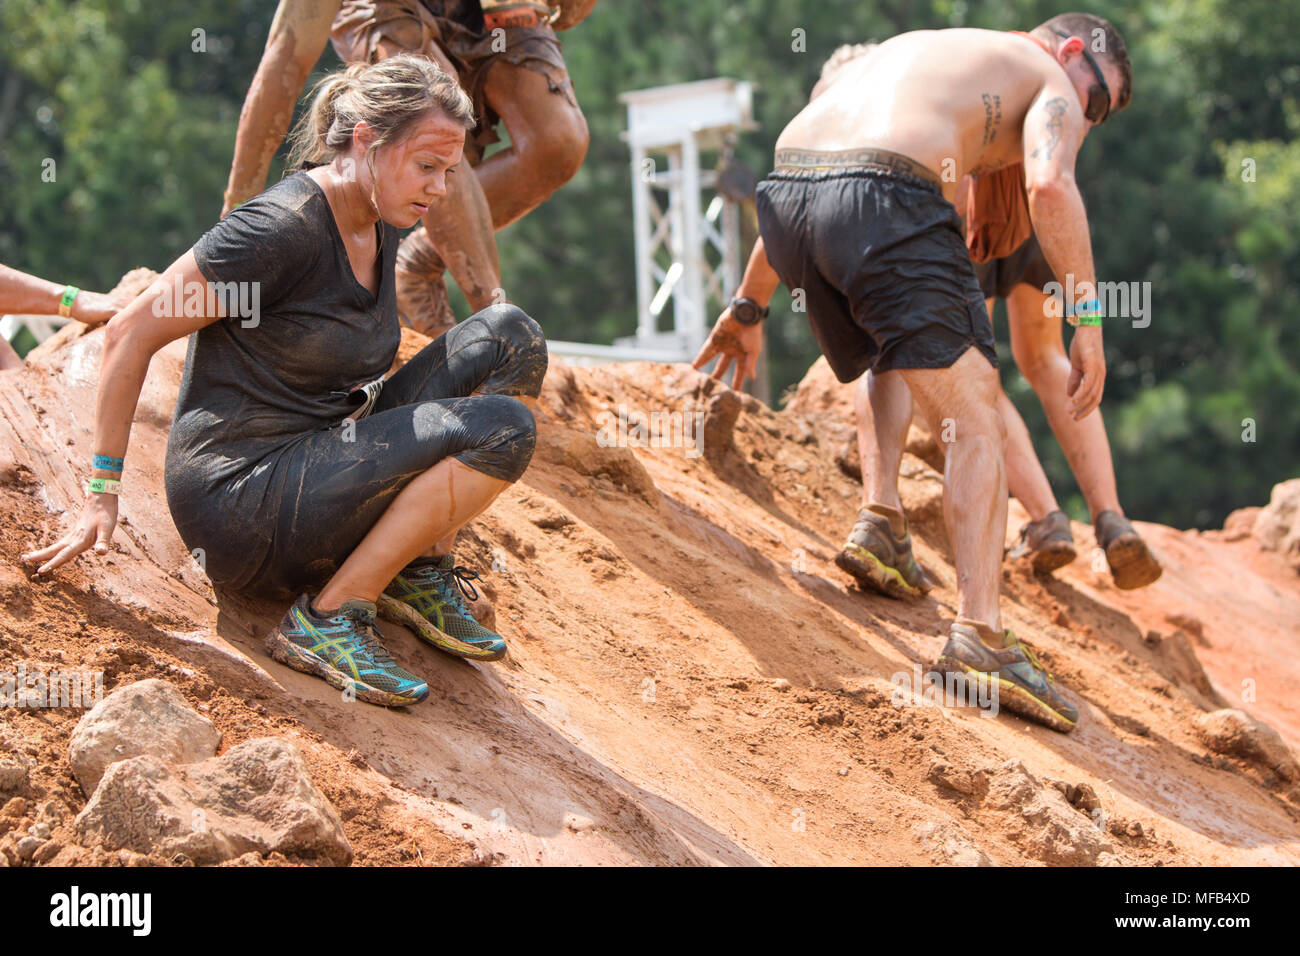 Competitors carefully make their way down a large slippery dirt mound at the Rugged Maniac Obstacle Course race on August 22, 2015 in Conyers, GA. - Stock Image